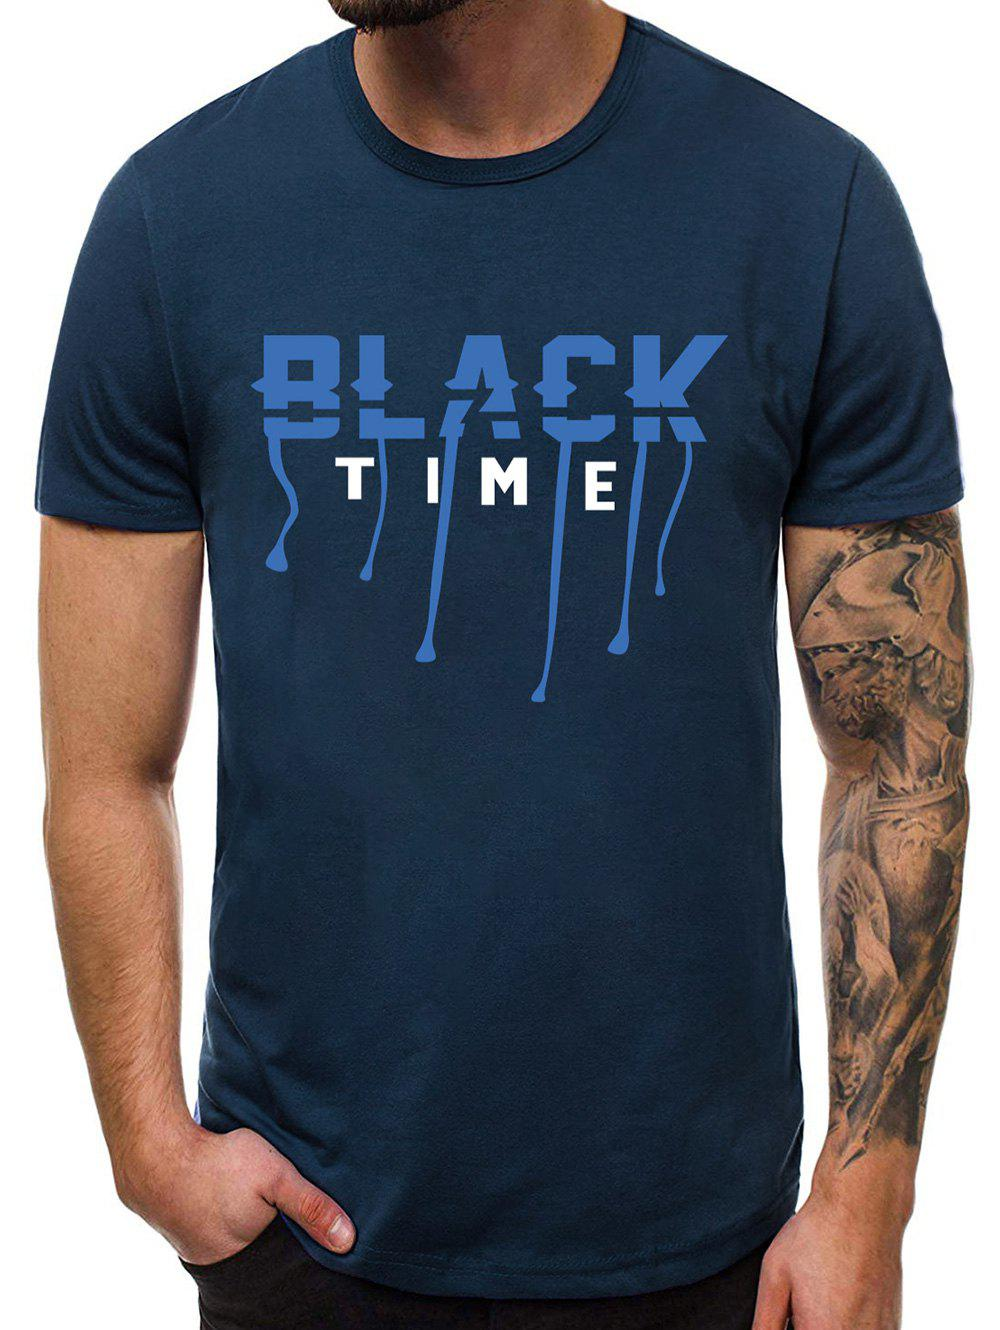 Letter Graphic Pattern Casual T-shirt - CADETBLUE S